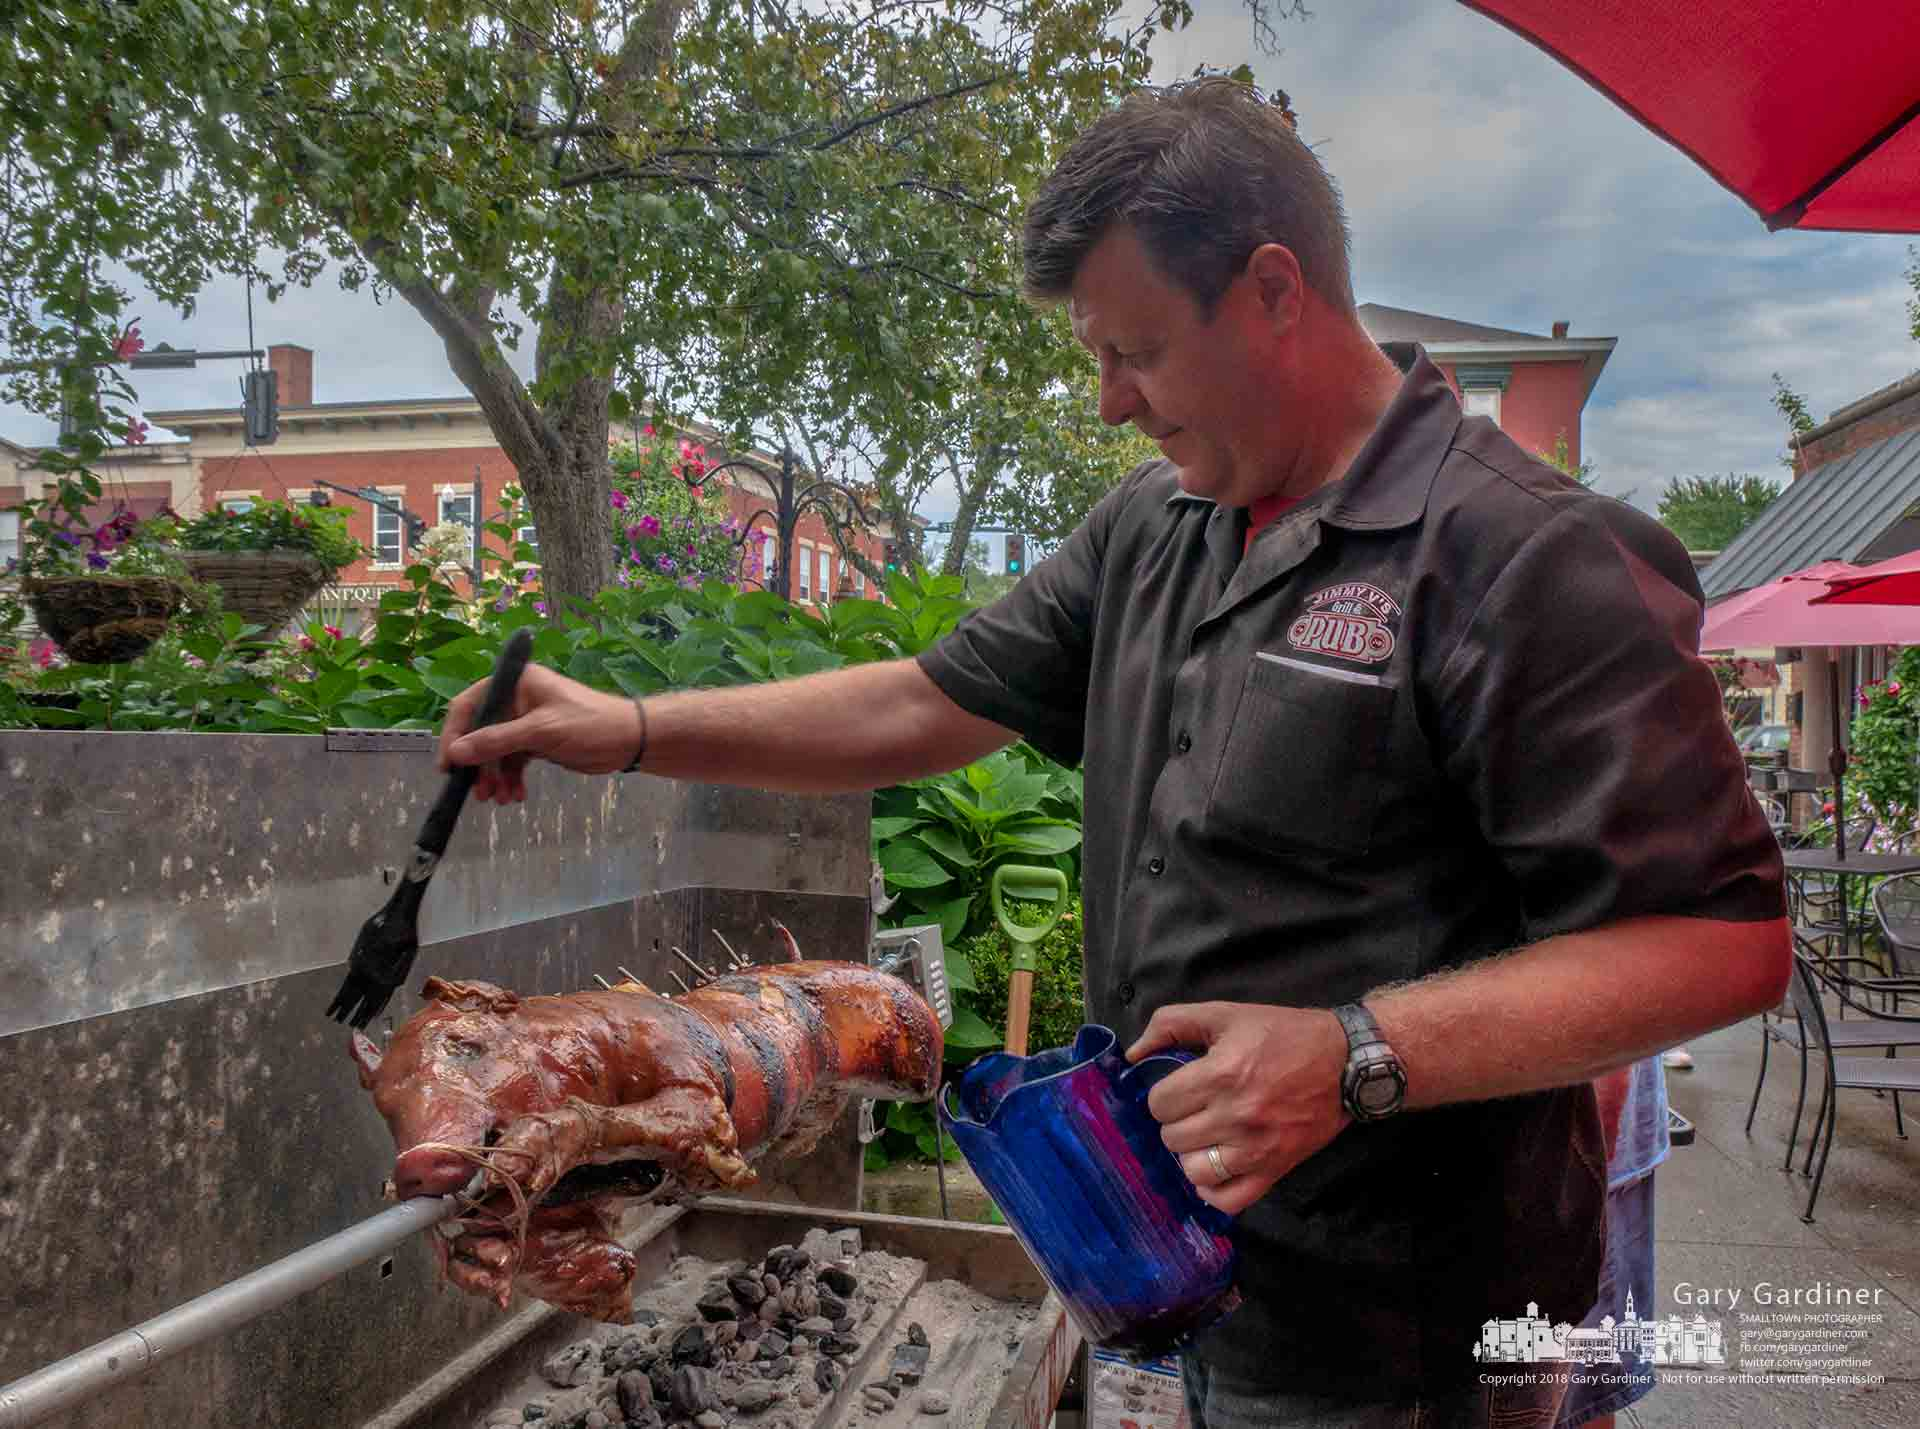 Mario Nedelkoski swabs oil on the whole pig he roasted Saturday to celebrate Jimmy V's ninth anniversary in Uptown Westerville. My Final Photo for Aug. 11, 2018.